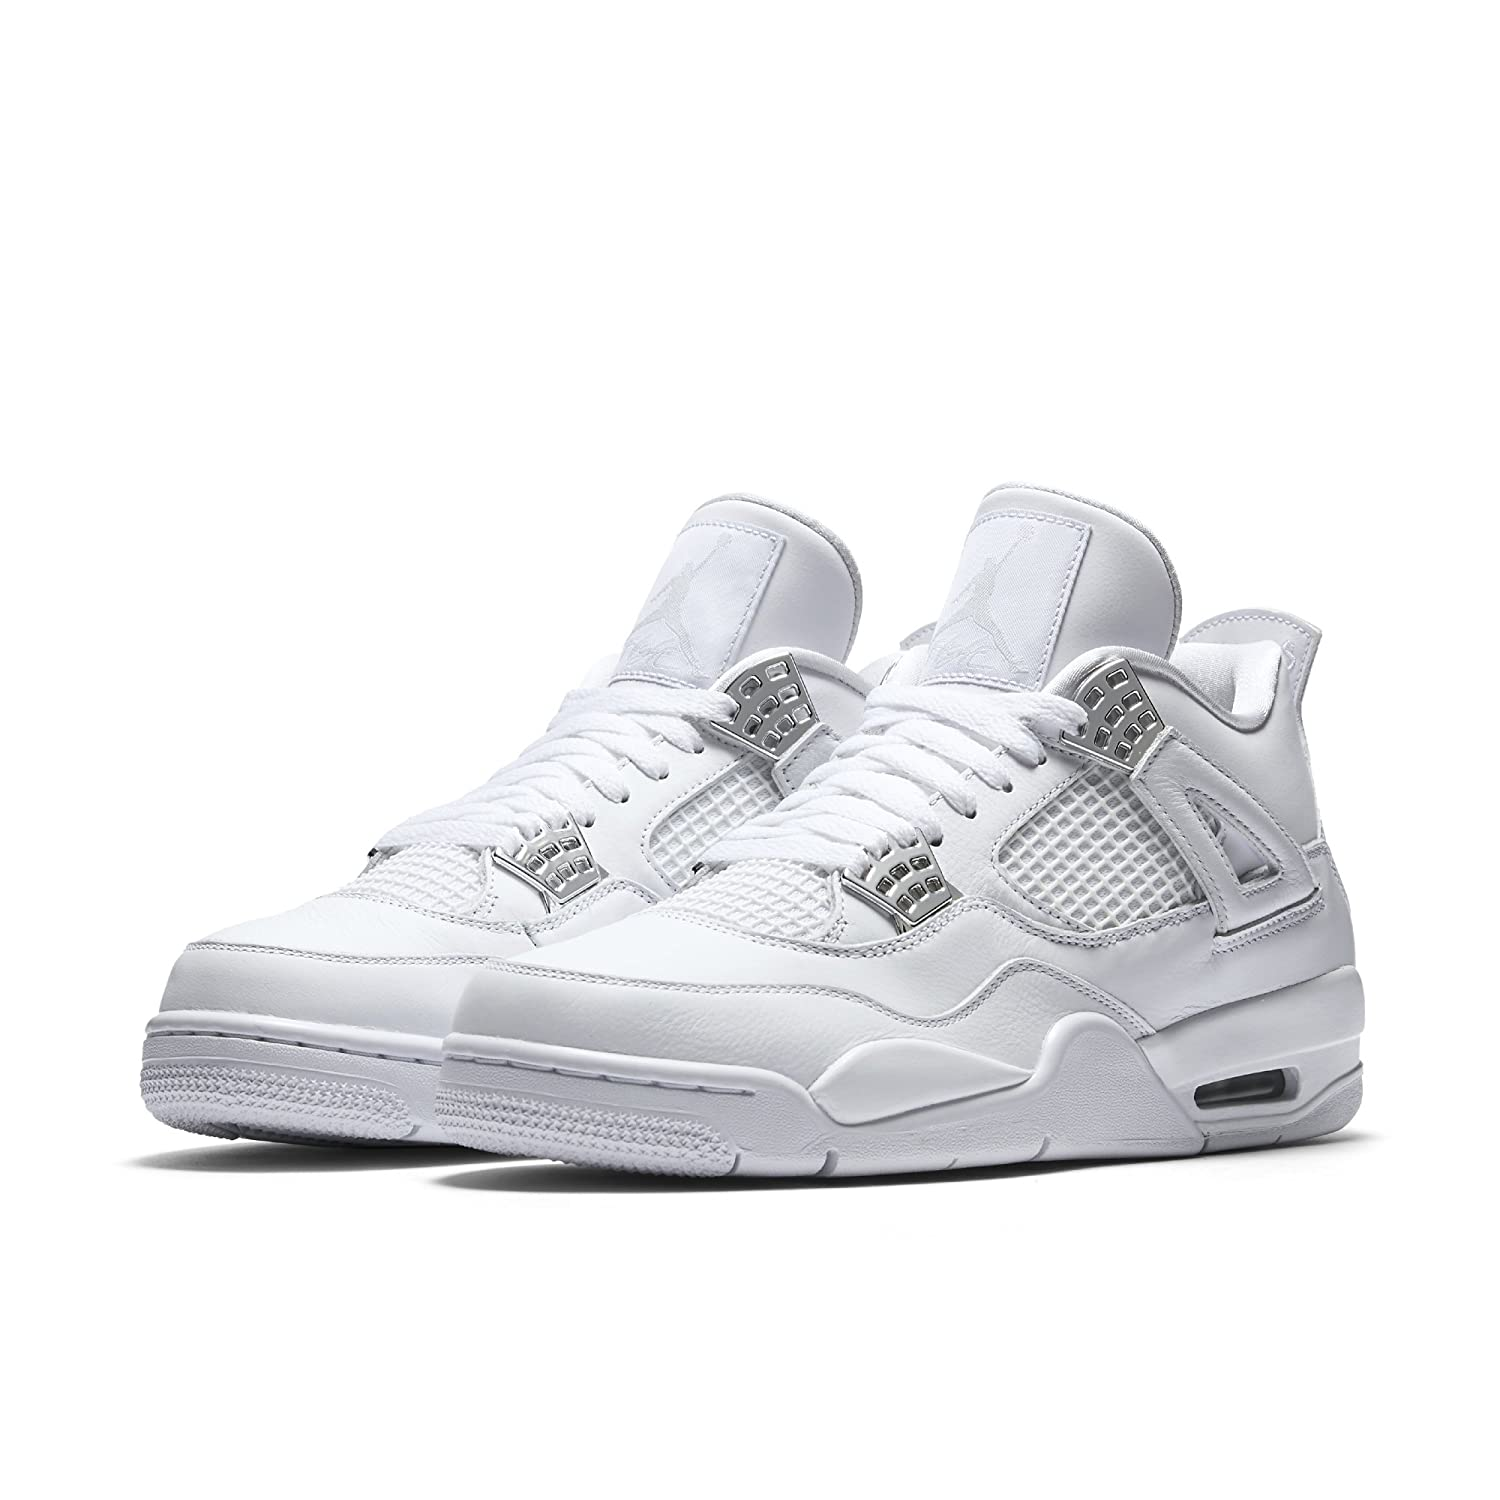 air jordan retro 4 white